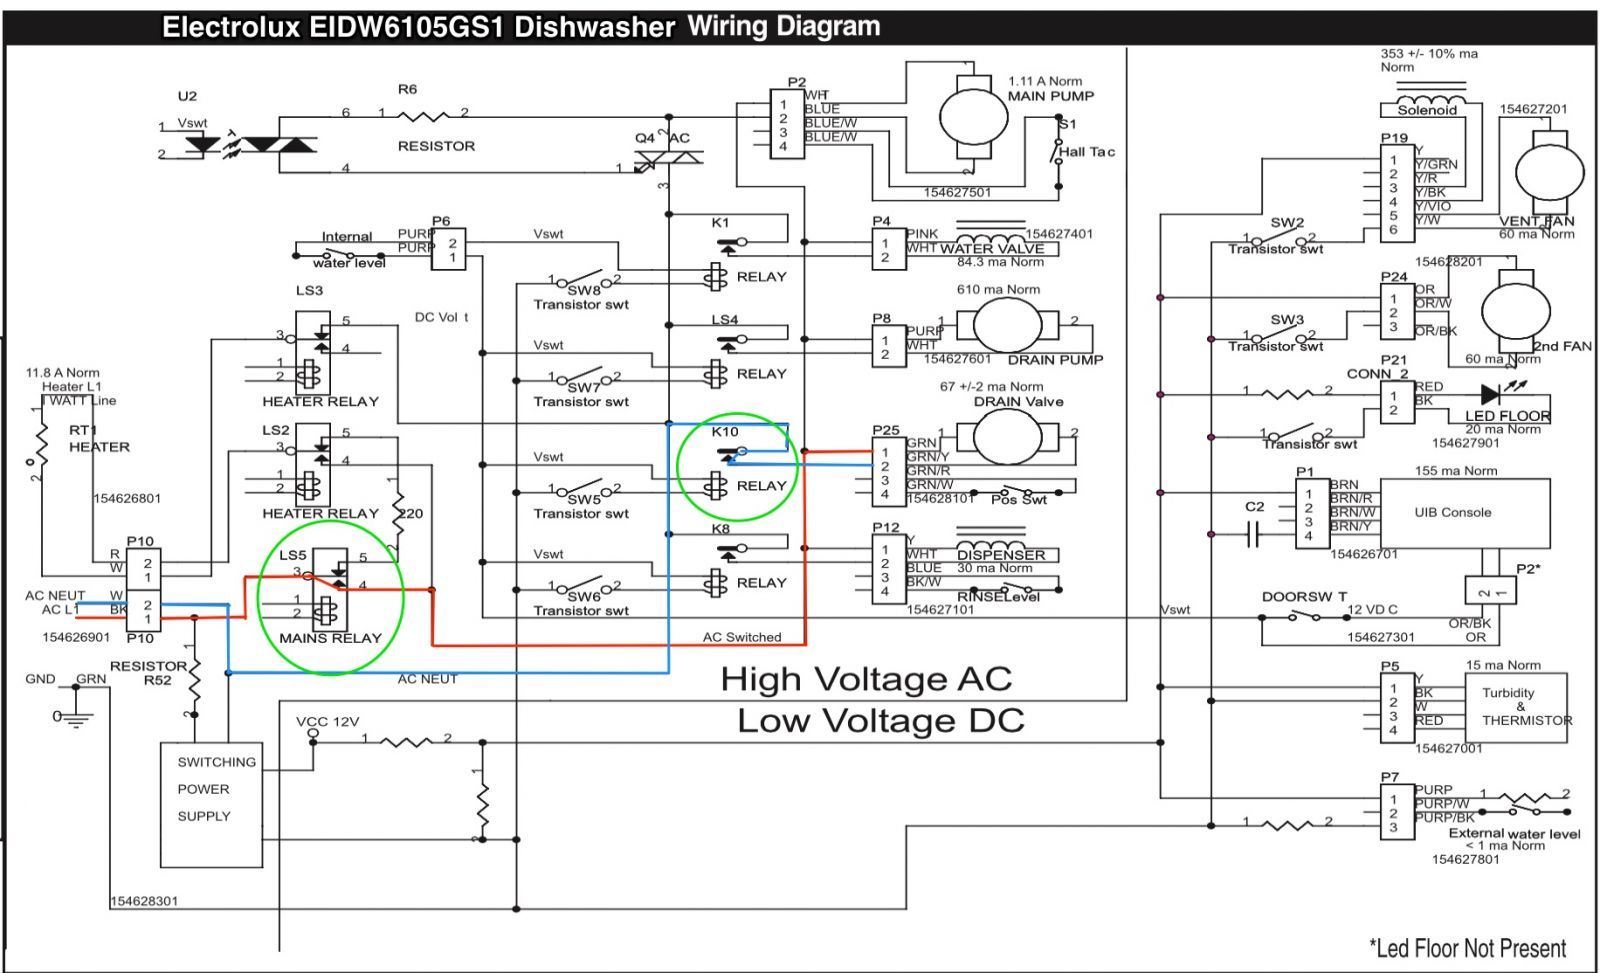 Electrolux EIDW6105GS1 Dishwasher Wiring Diagram The